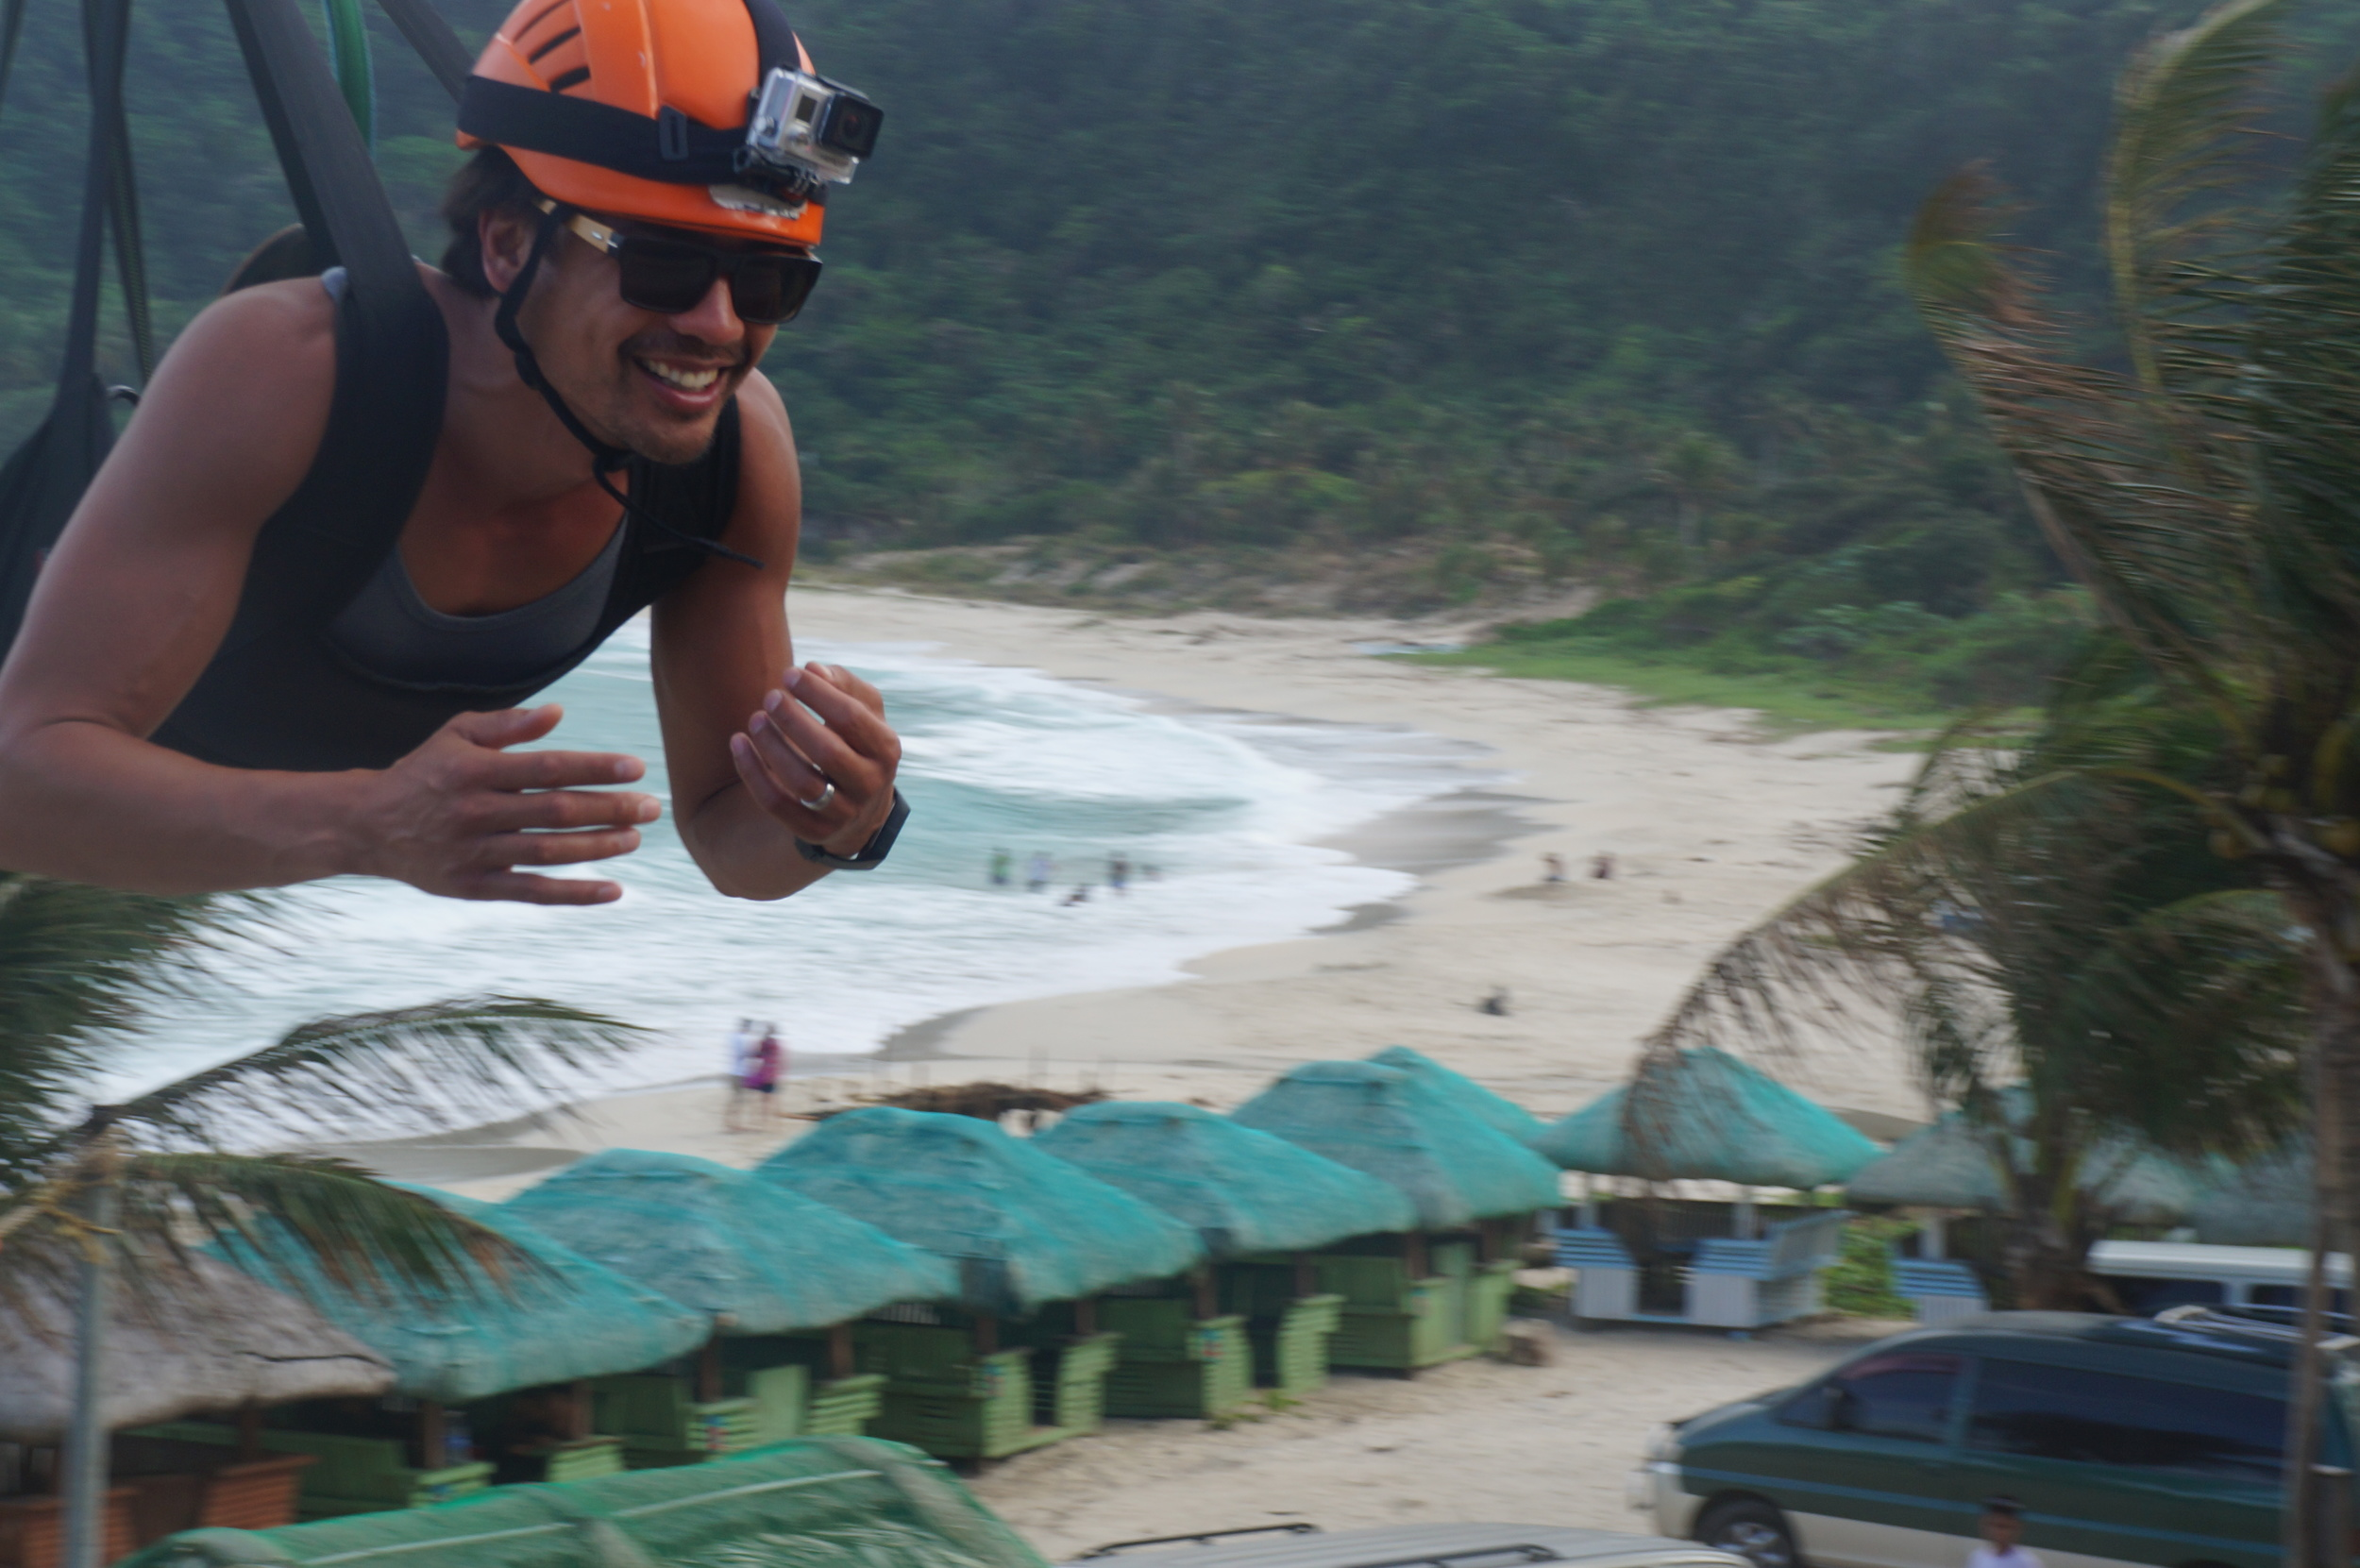 Jay flying down the longest zipline over the ocean in Pagudpud's Ilicos Norte.